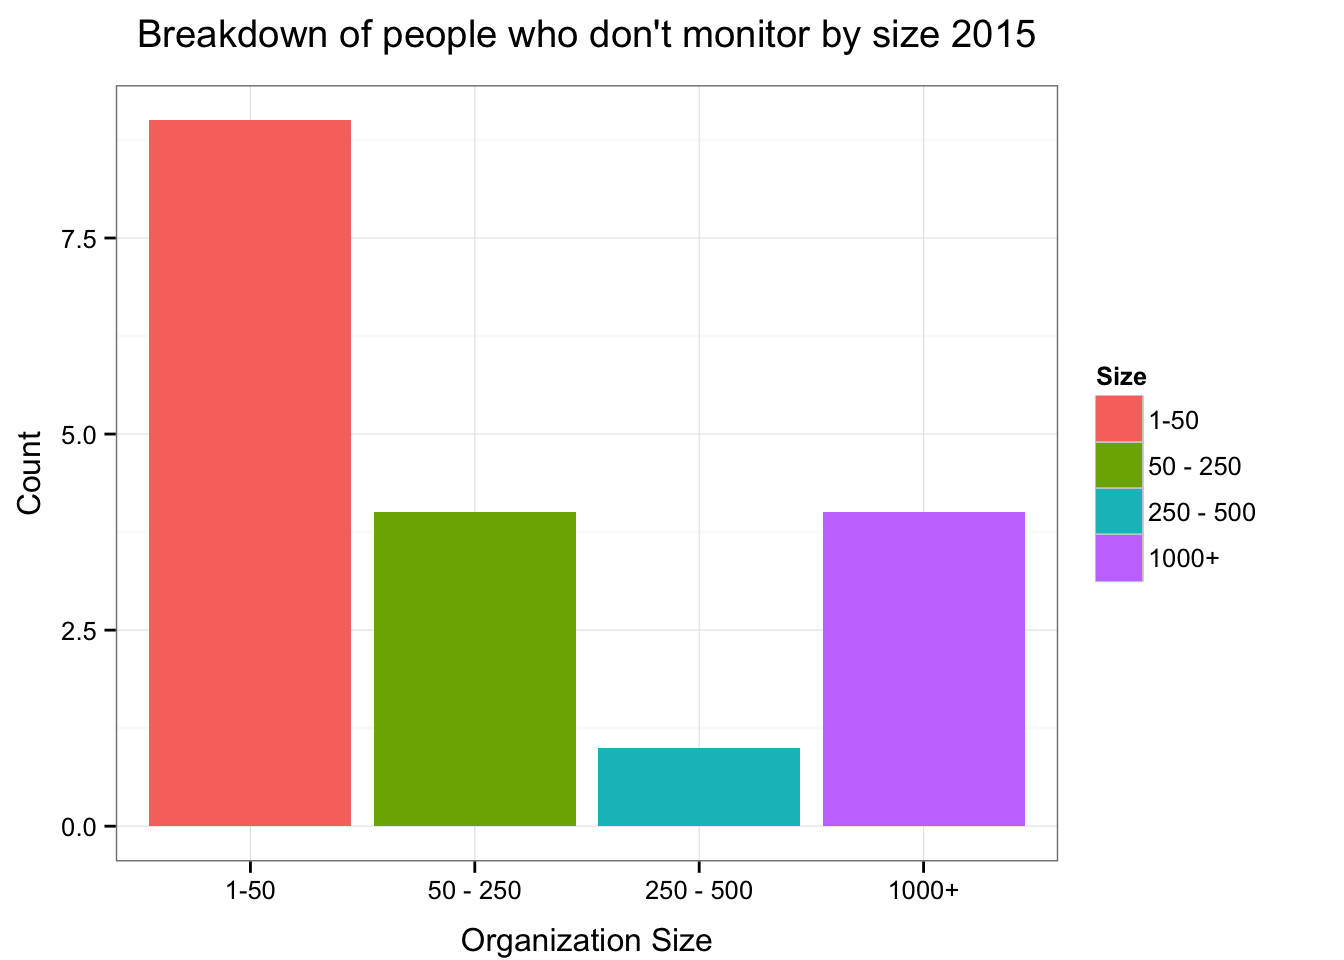 Count of respondents who don't monitor by size